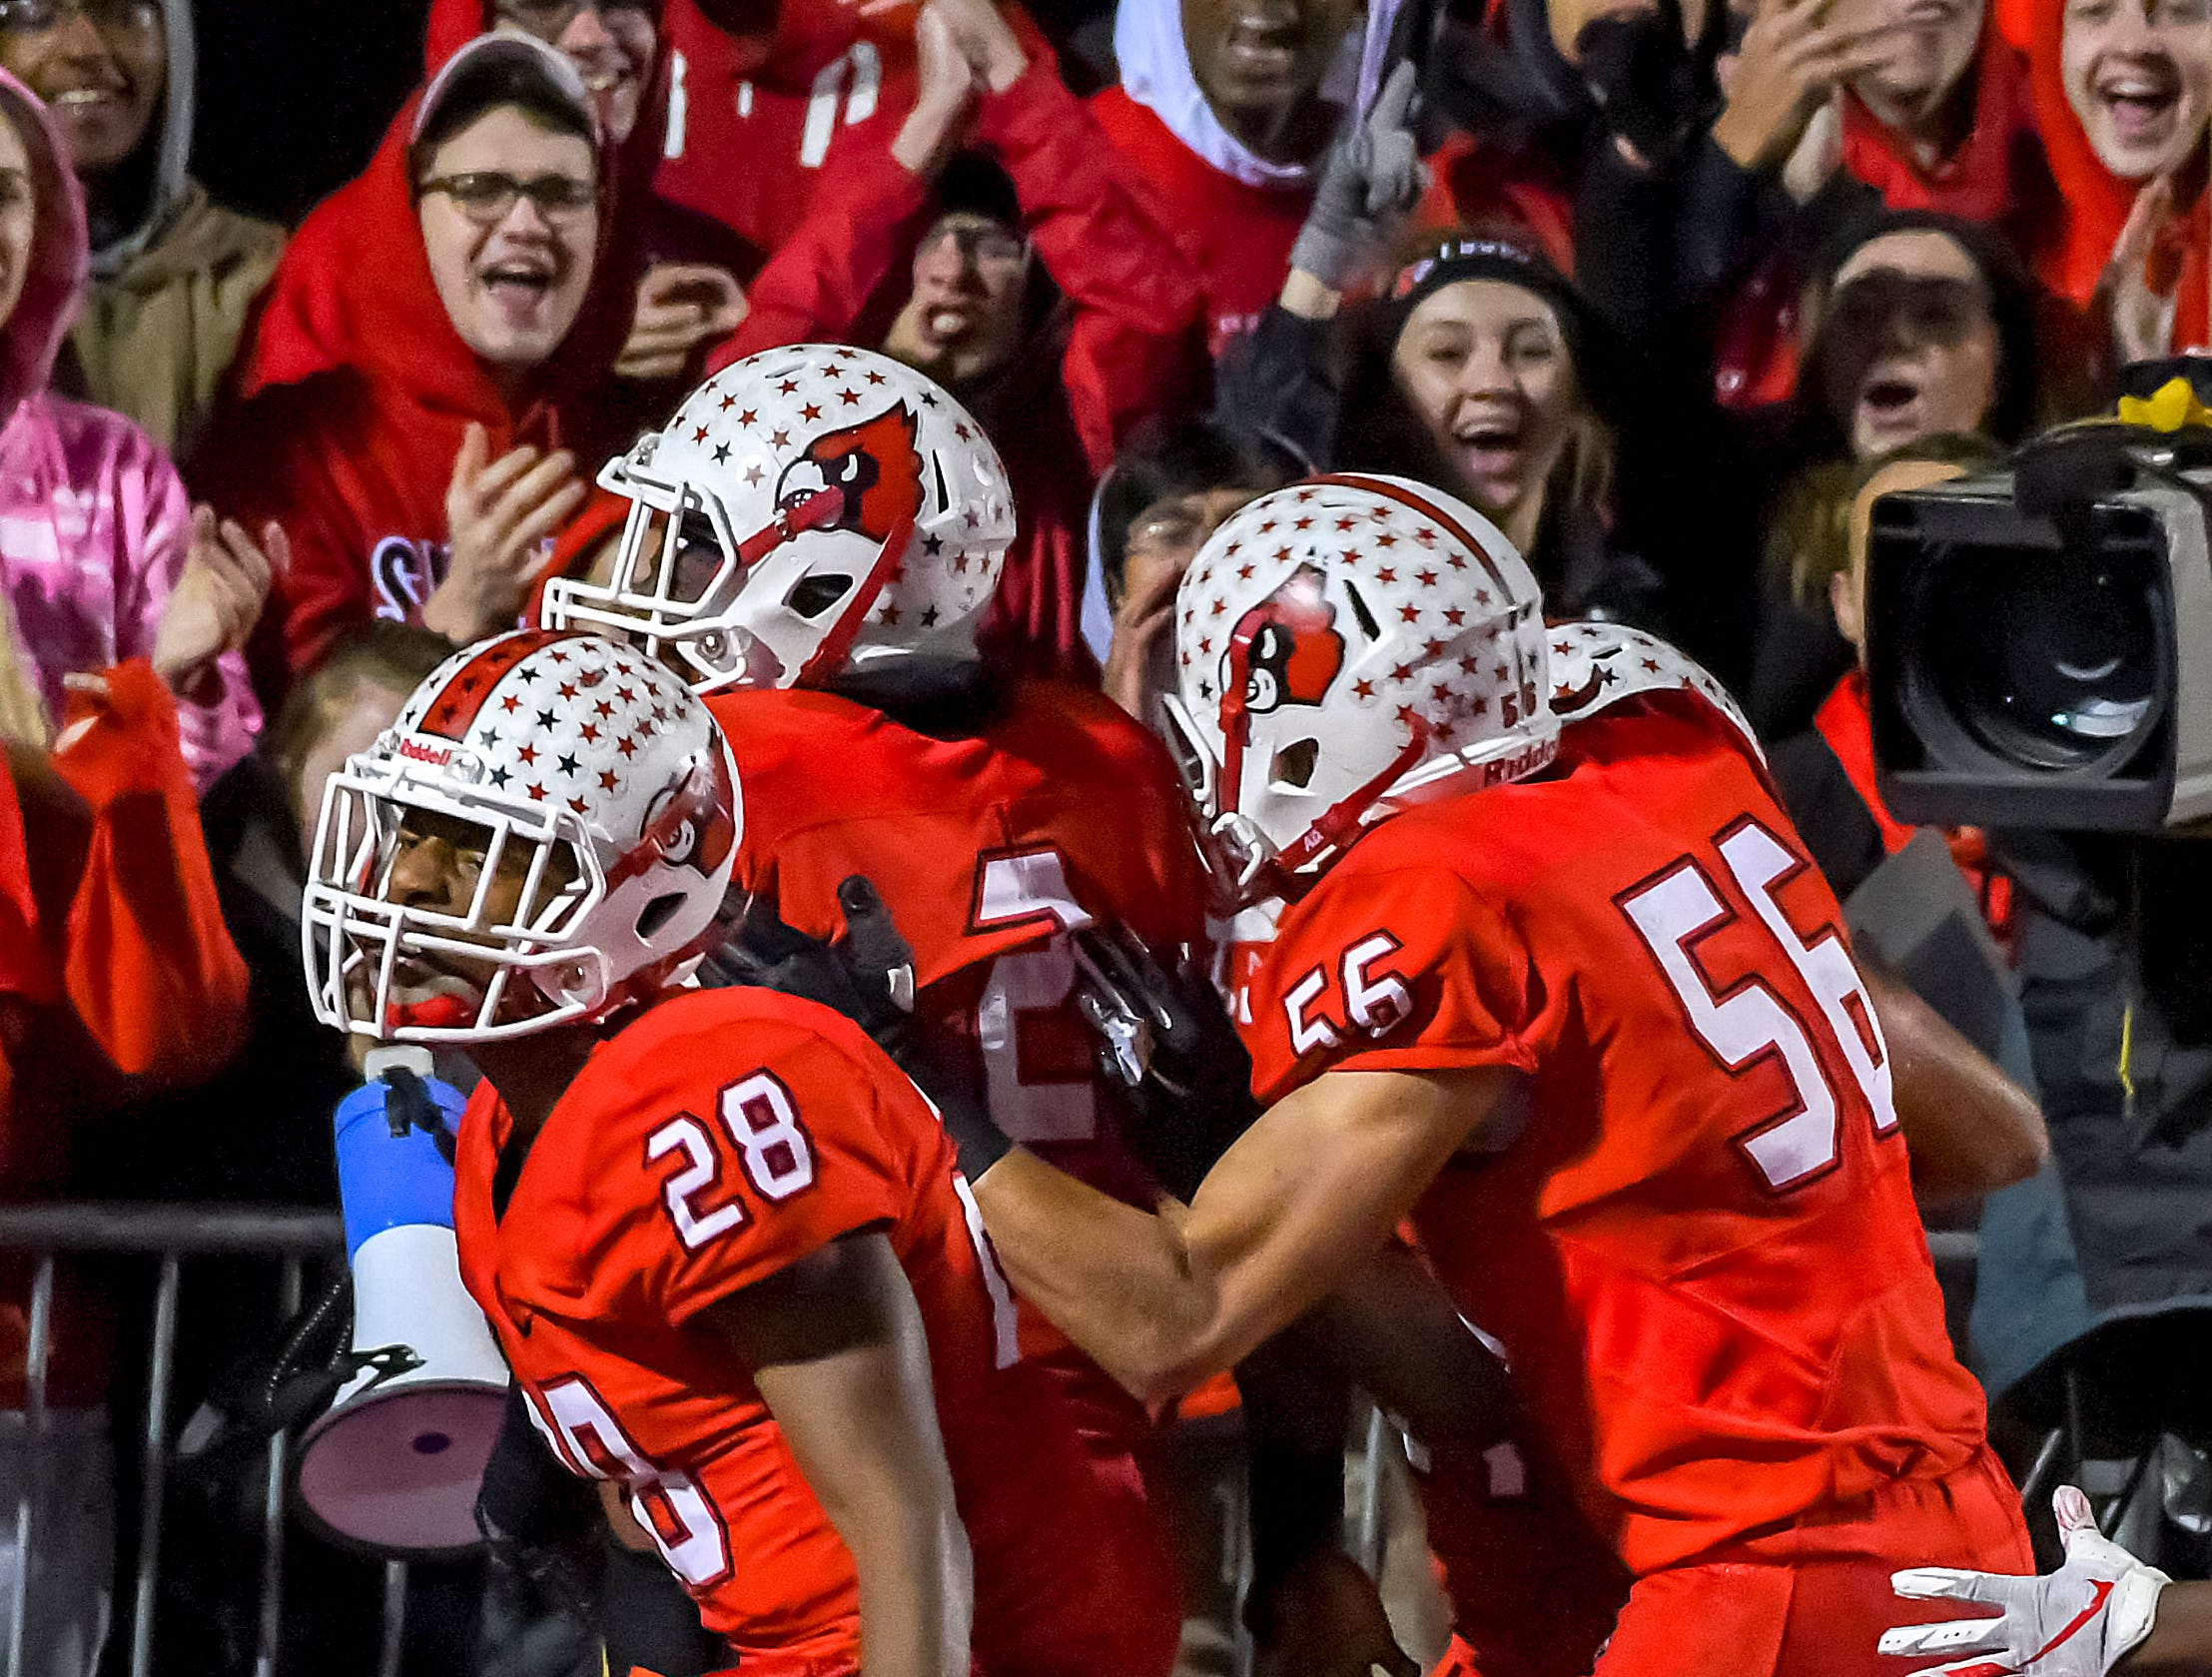 The Colerain Cardinals celebrate after a Deante Smith-Moore touchdown against St. X in the OHSAA DI Region 4 Playoffs at Colerain High School,  Friday Nov. 2, 2018